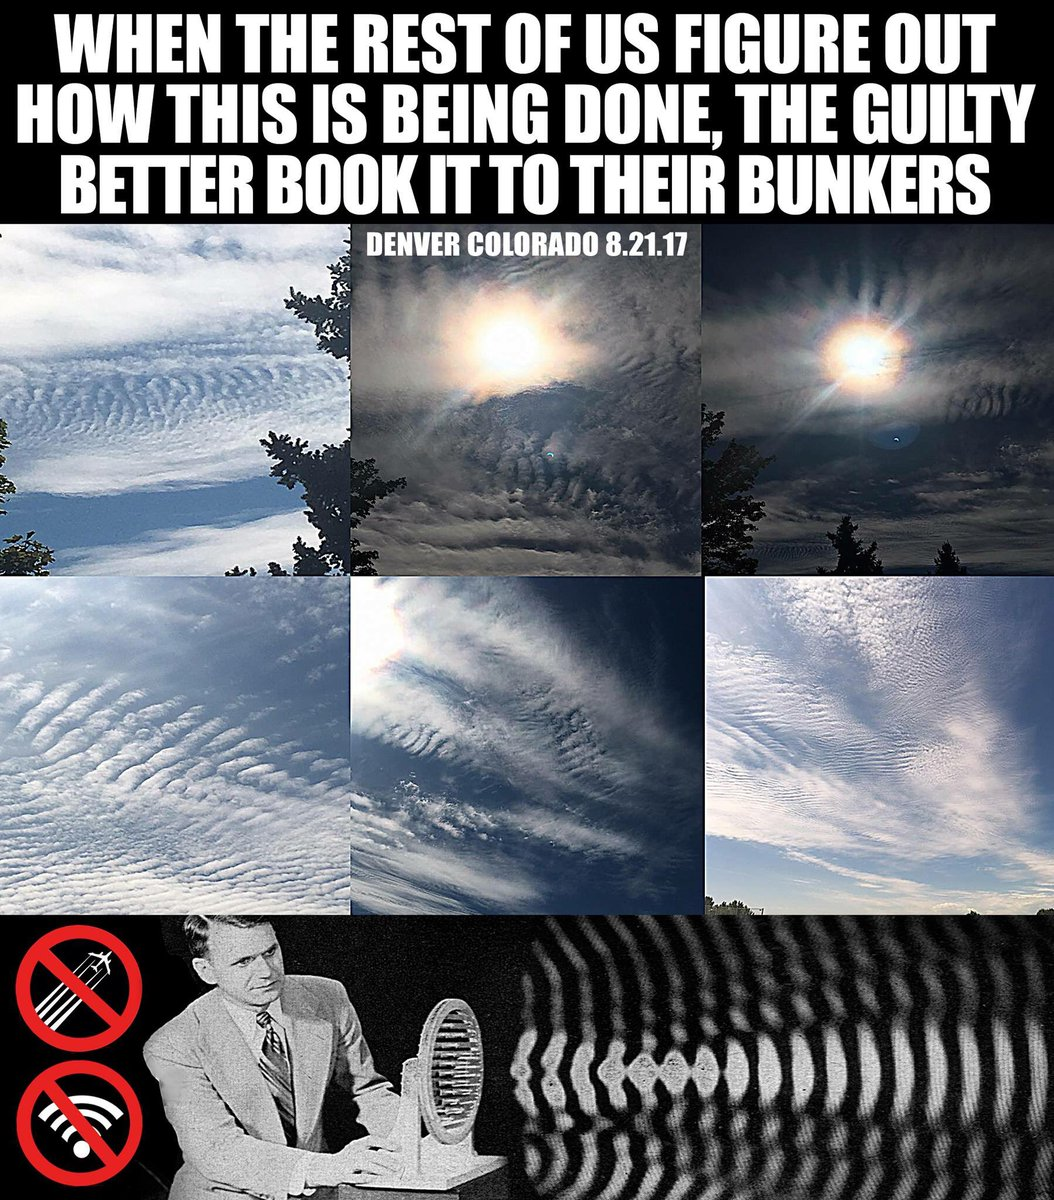 #frequency #HAARP #GWEN #TowerofTerror  The power of frequency. Anything can be destroyed as well as cured. Why use them for destruction..<br>http://pic.twitter.com/QhPh58j4O9